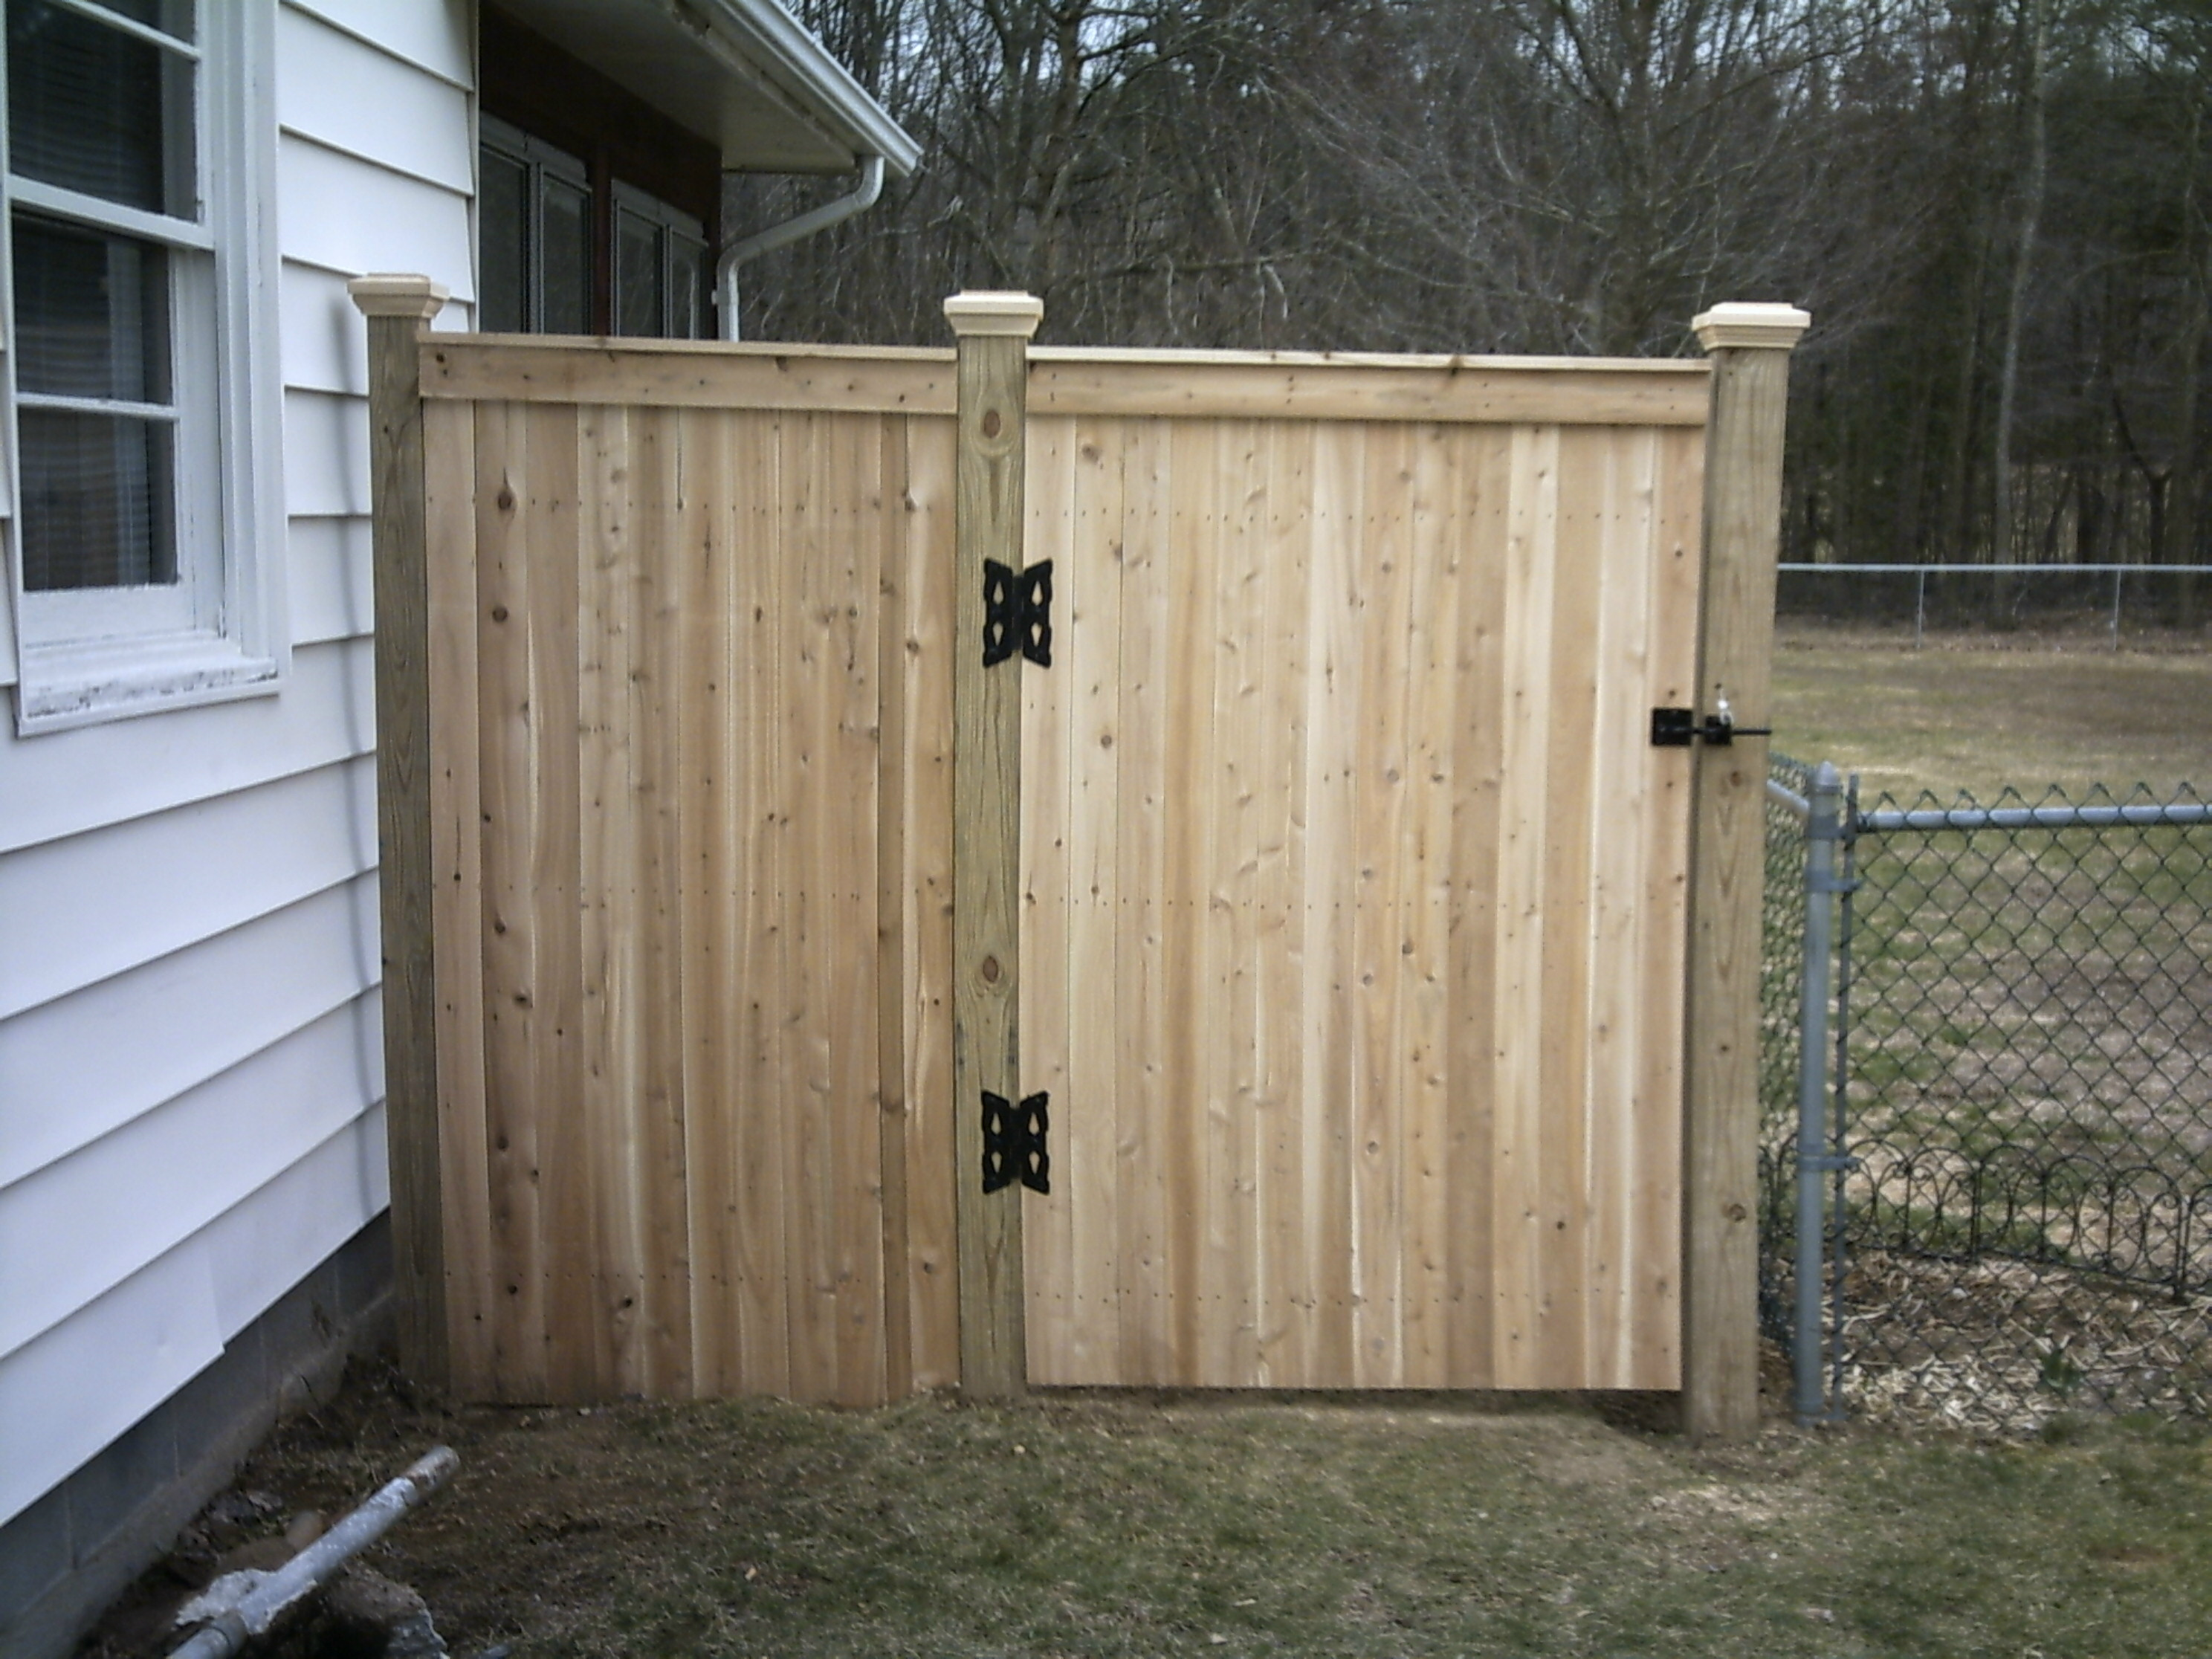 Wood Fence Gate 6 High Board Fence With 3